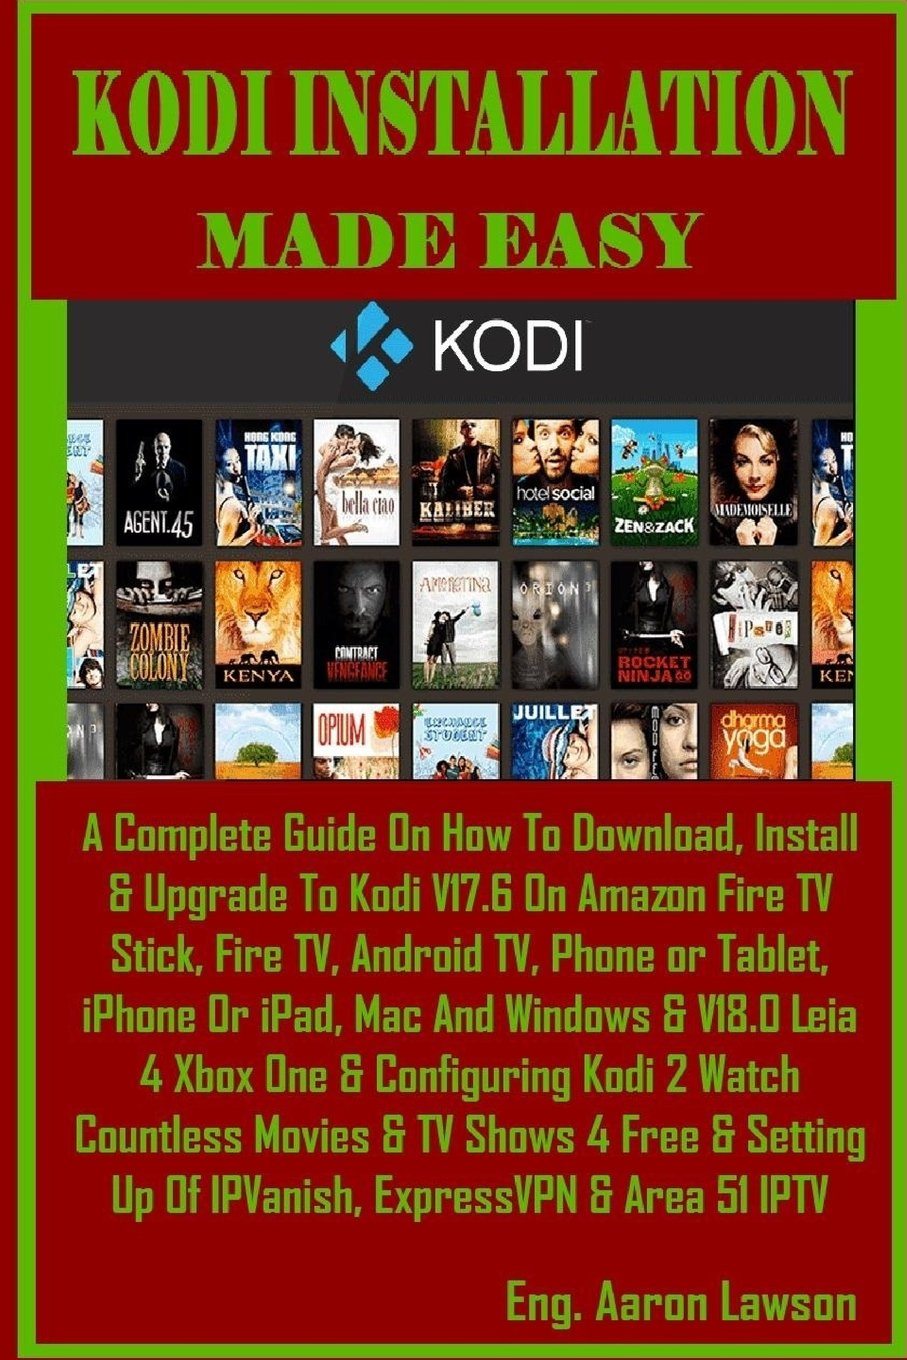 ... A Complete Guide On How To Download, Install & Upgrade To Kodi V17.6 On  Amazon Fire TV Stick, Fire TV, Android TV, Phone ... 2 Watch Countless  Movies ...